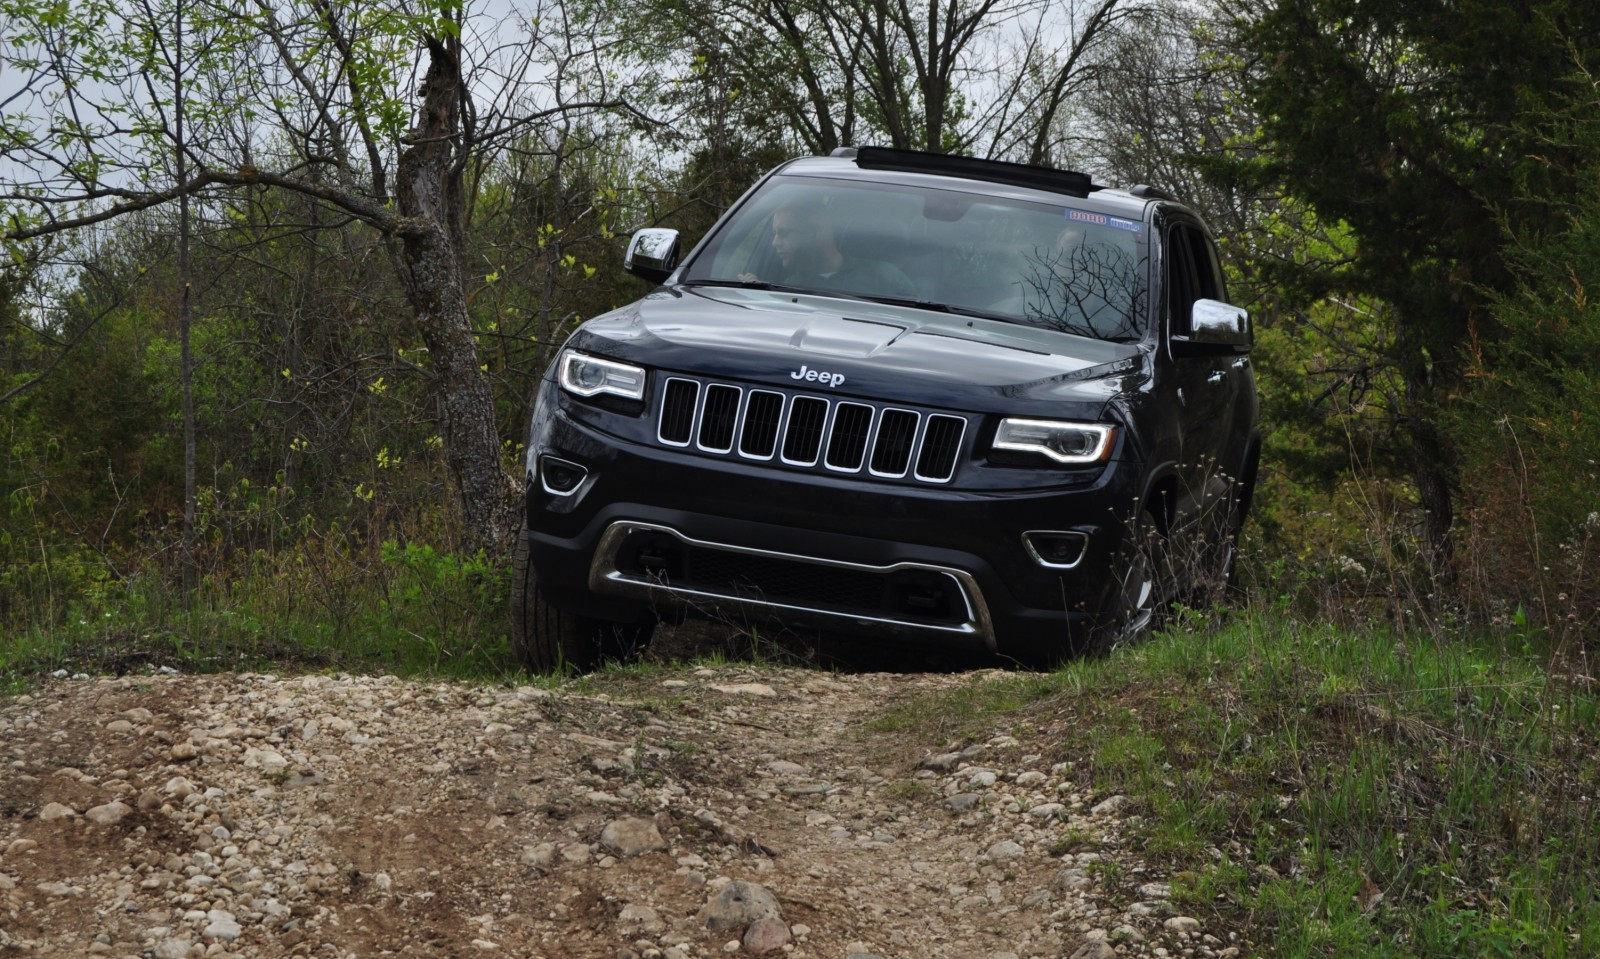 2014 jeep grand cherokee shows its trail rated skills off road 39. Black Bedroom Furniture Sets. Home Design Ideas